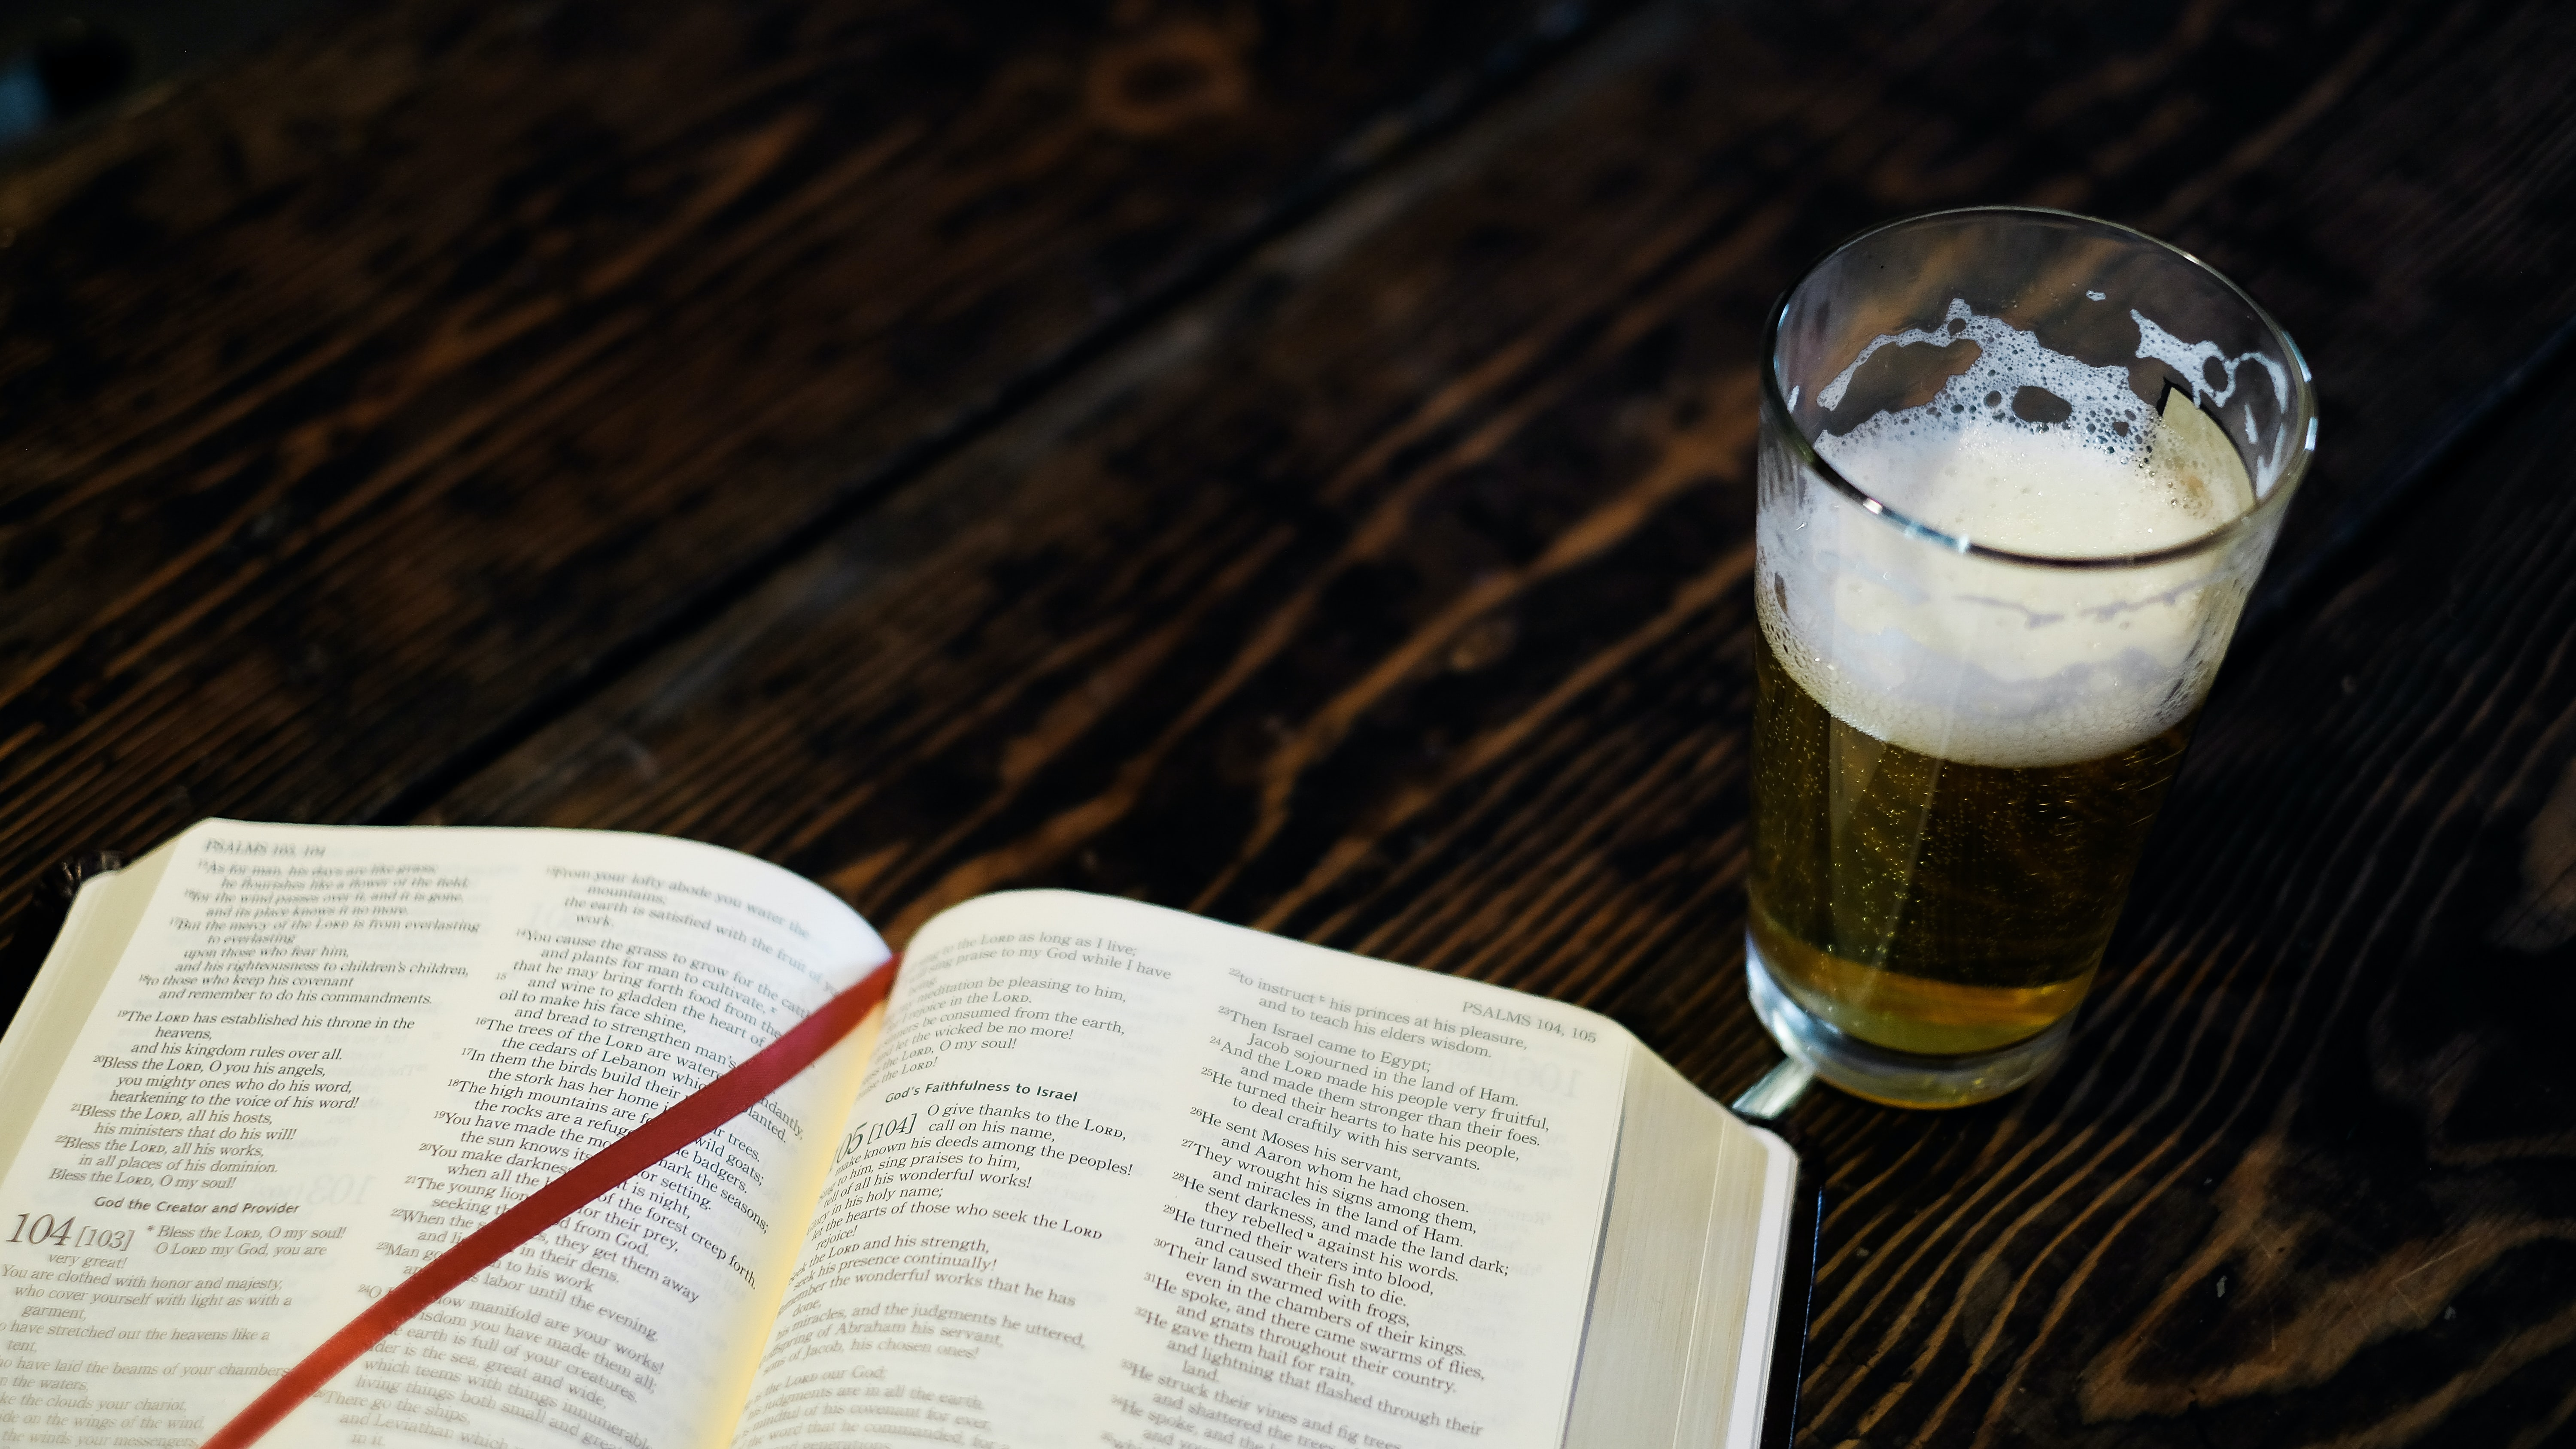 clear drinking glass filled with brown liquid near open book